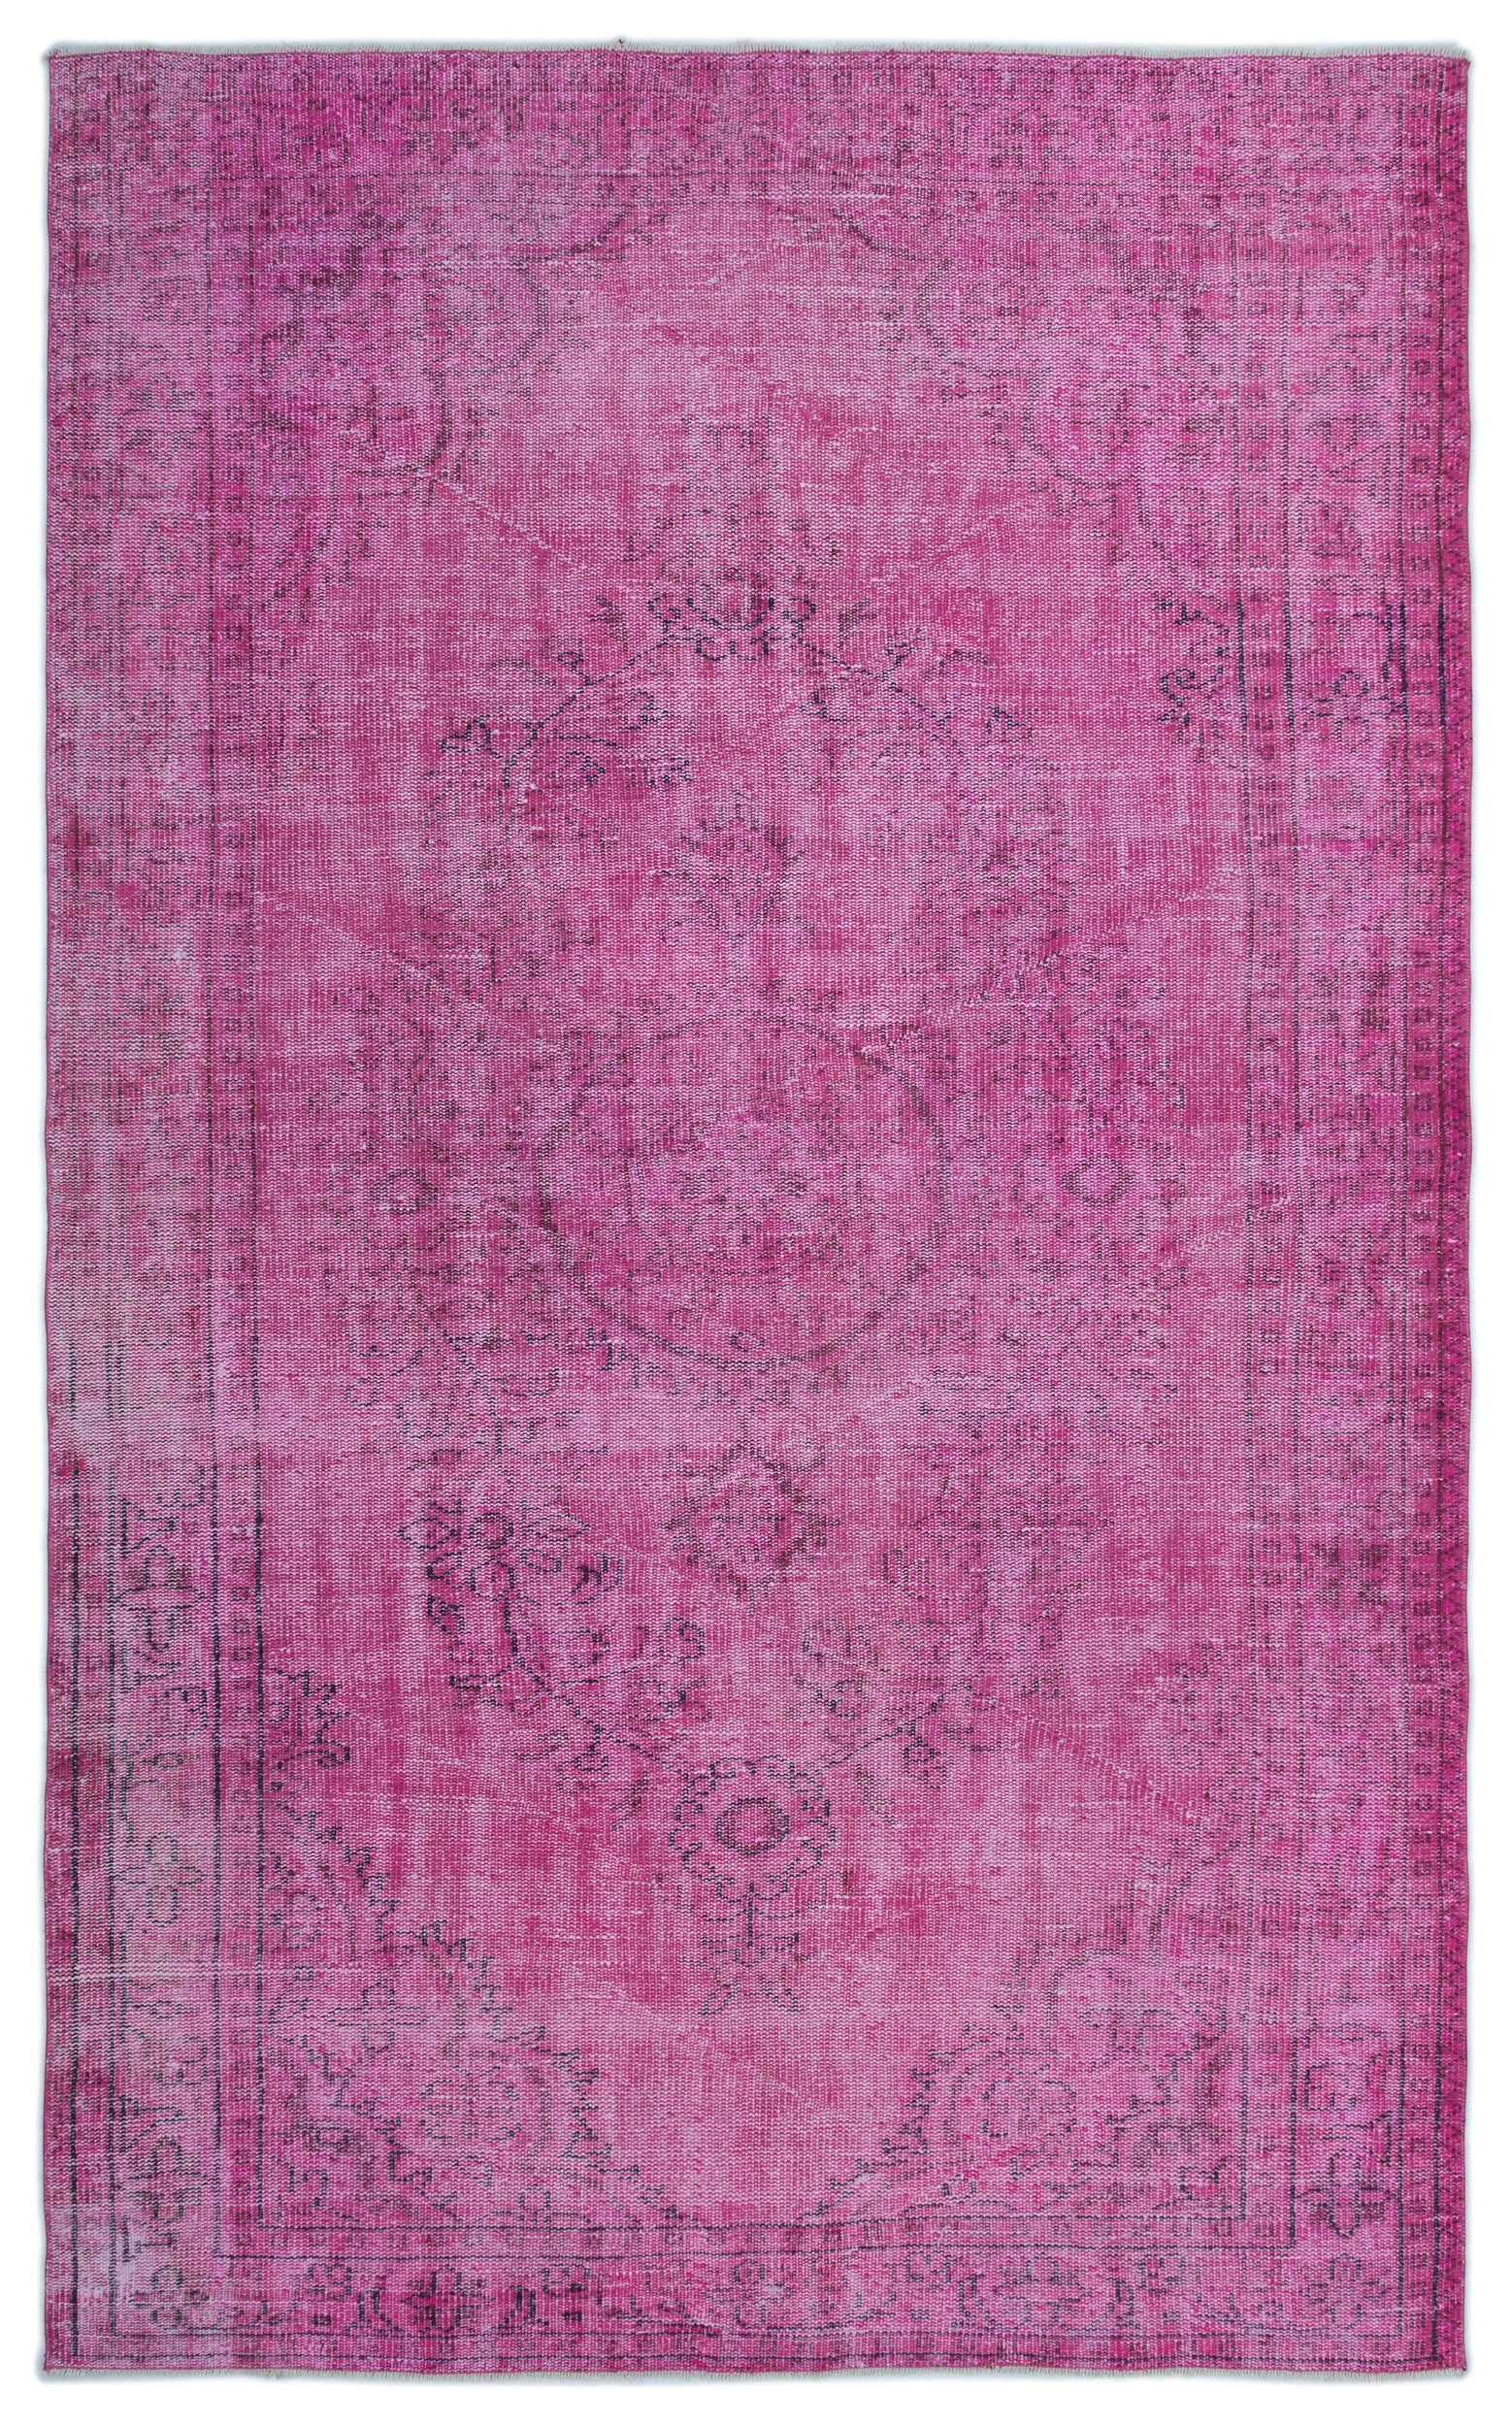 Pink Over Dyed Vintage Rug 5'9'' x 9'3'' ft 174 x 282 cm